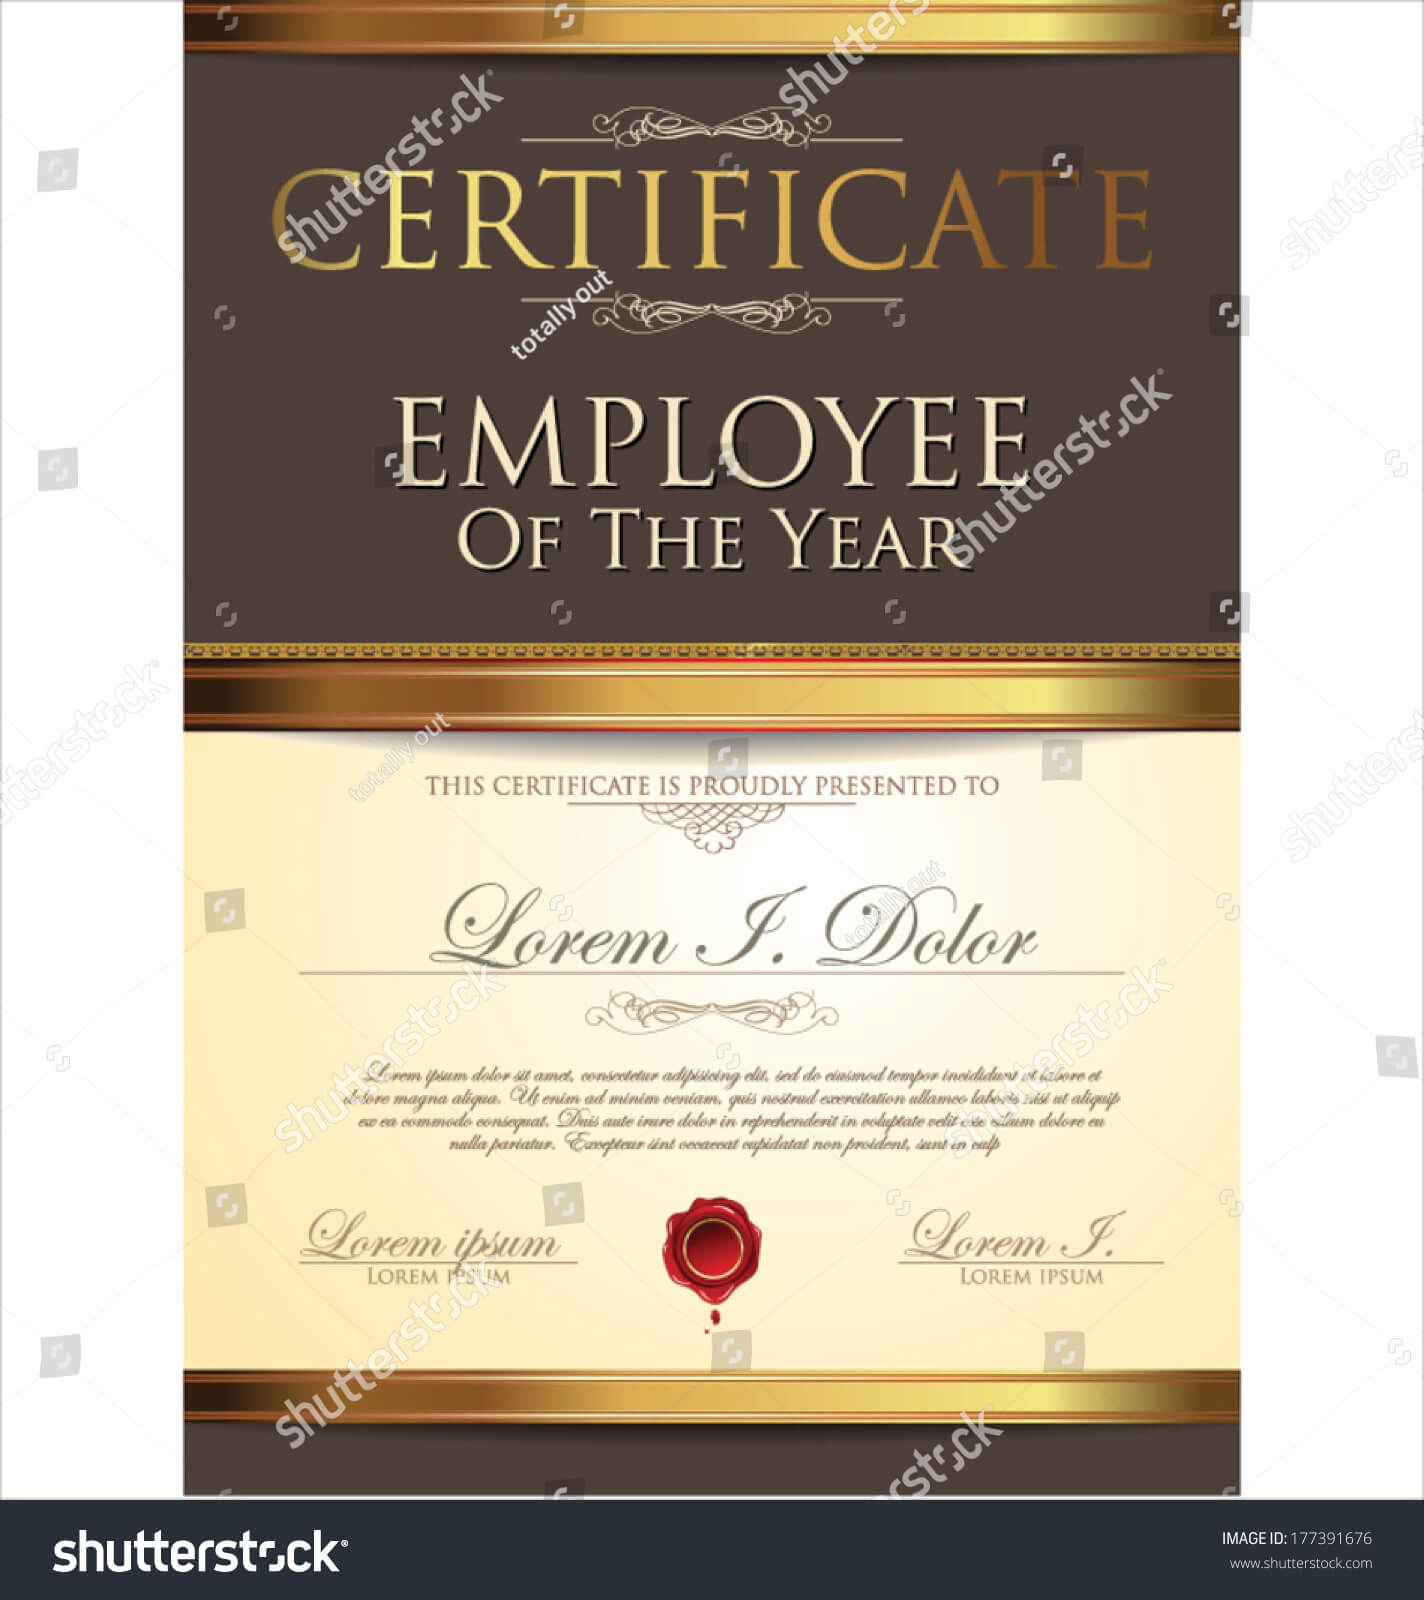 Certificate Employee Year Stock Vector (Royalty Free) 177391676 Regarding Employee Of The Year Certificate Template Free